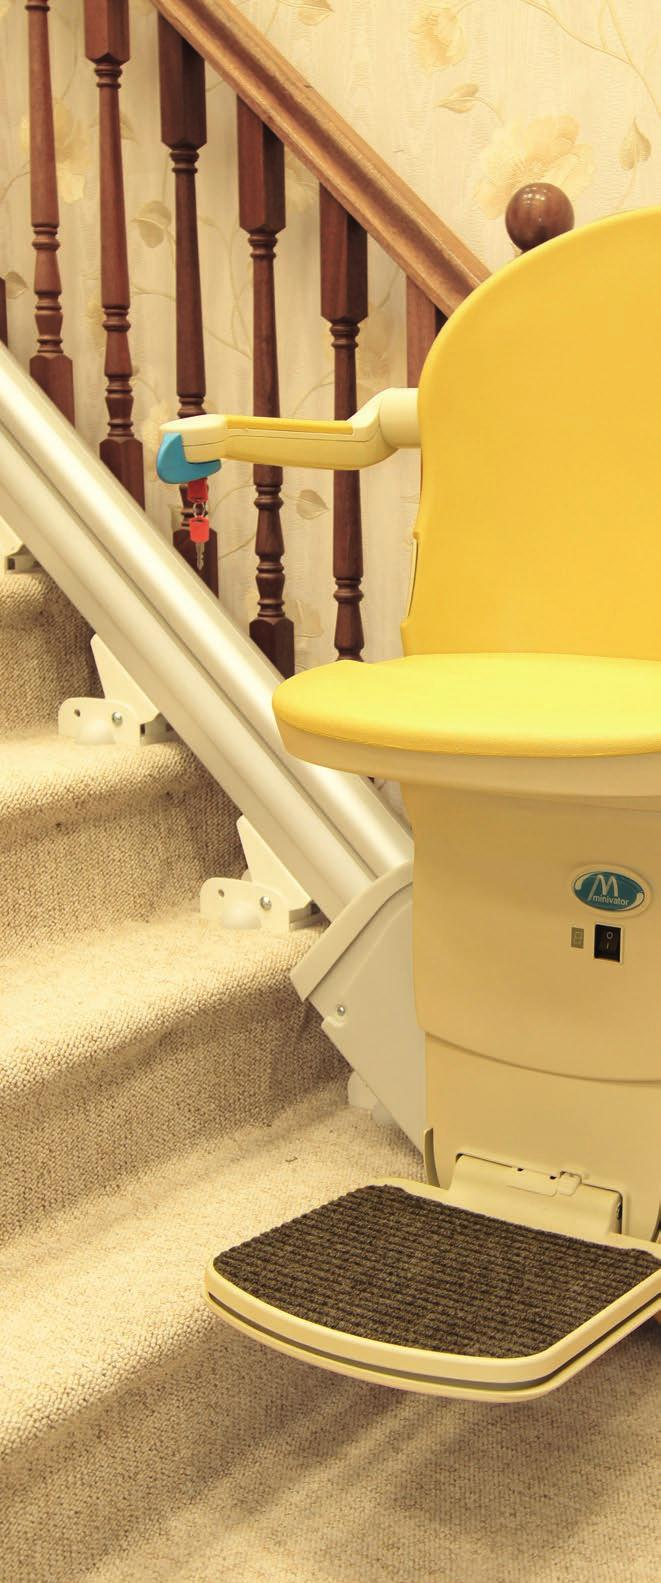 Handicare 1000 For those looking for minimal track intrusion into the staircase, the Handicare 1000 offers one of the slimmest straight